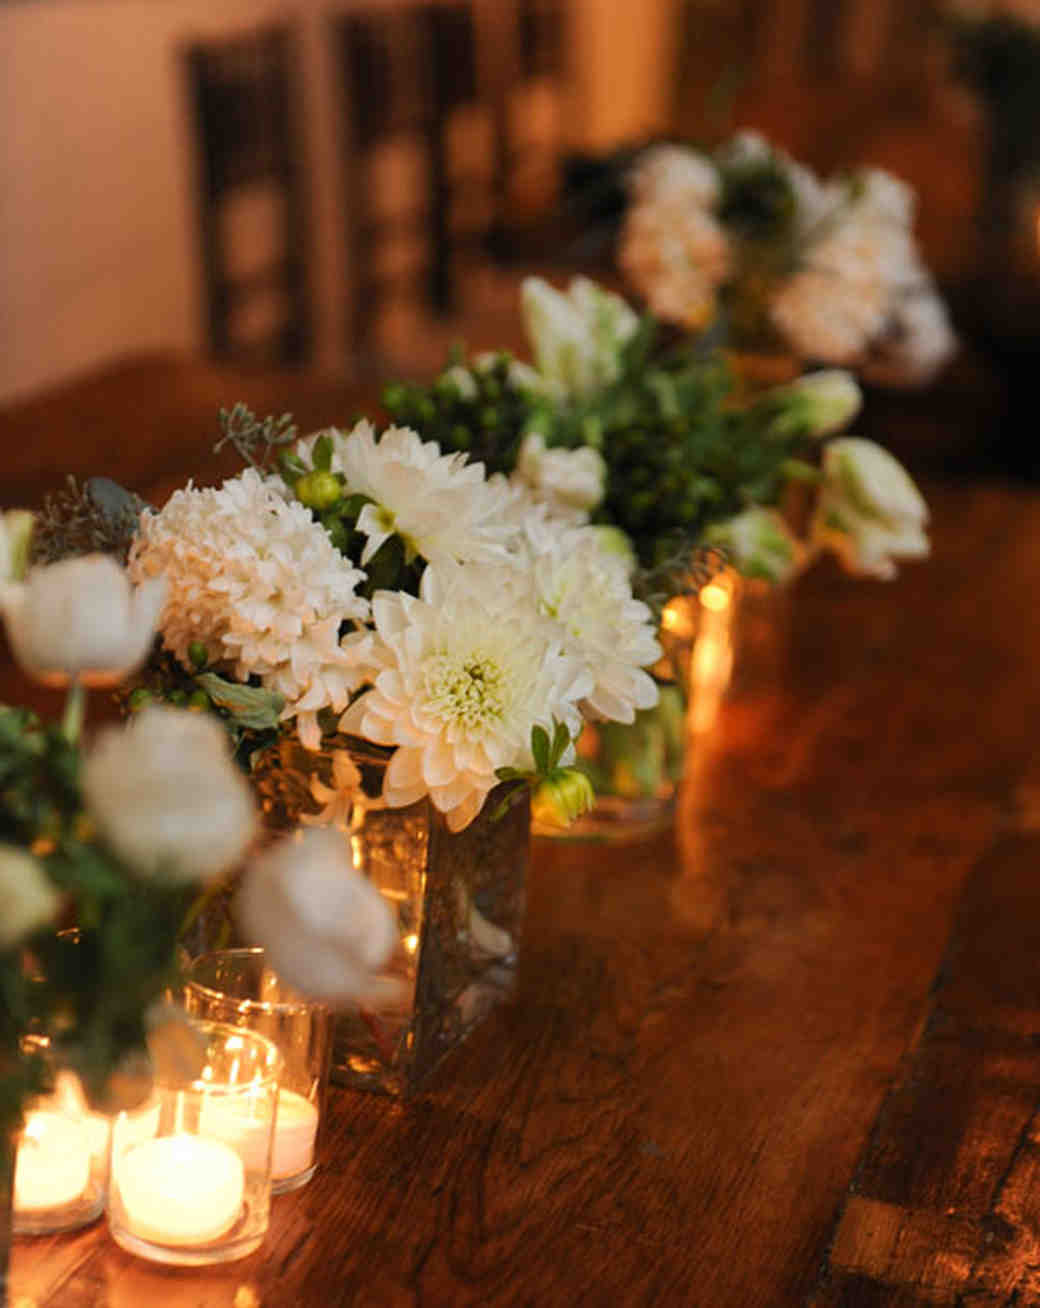 40 of our favorite floral wedding centerpieces martha stewart weddings dahlia wedding centerpieces junglespirit Image collections